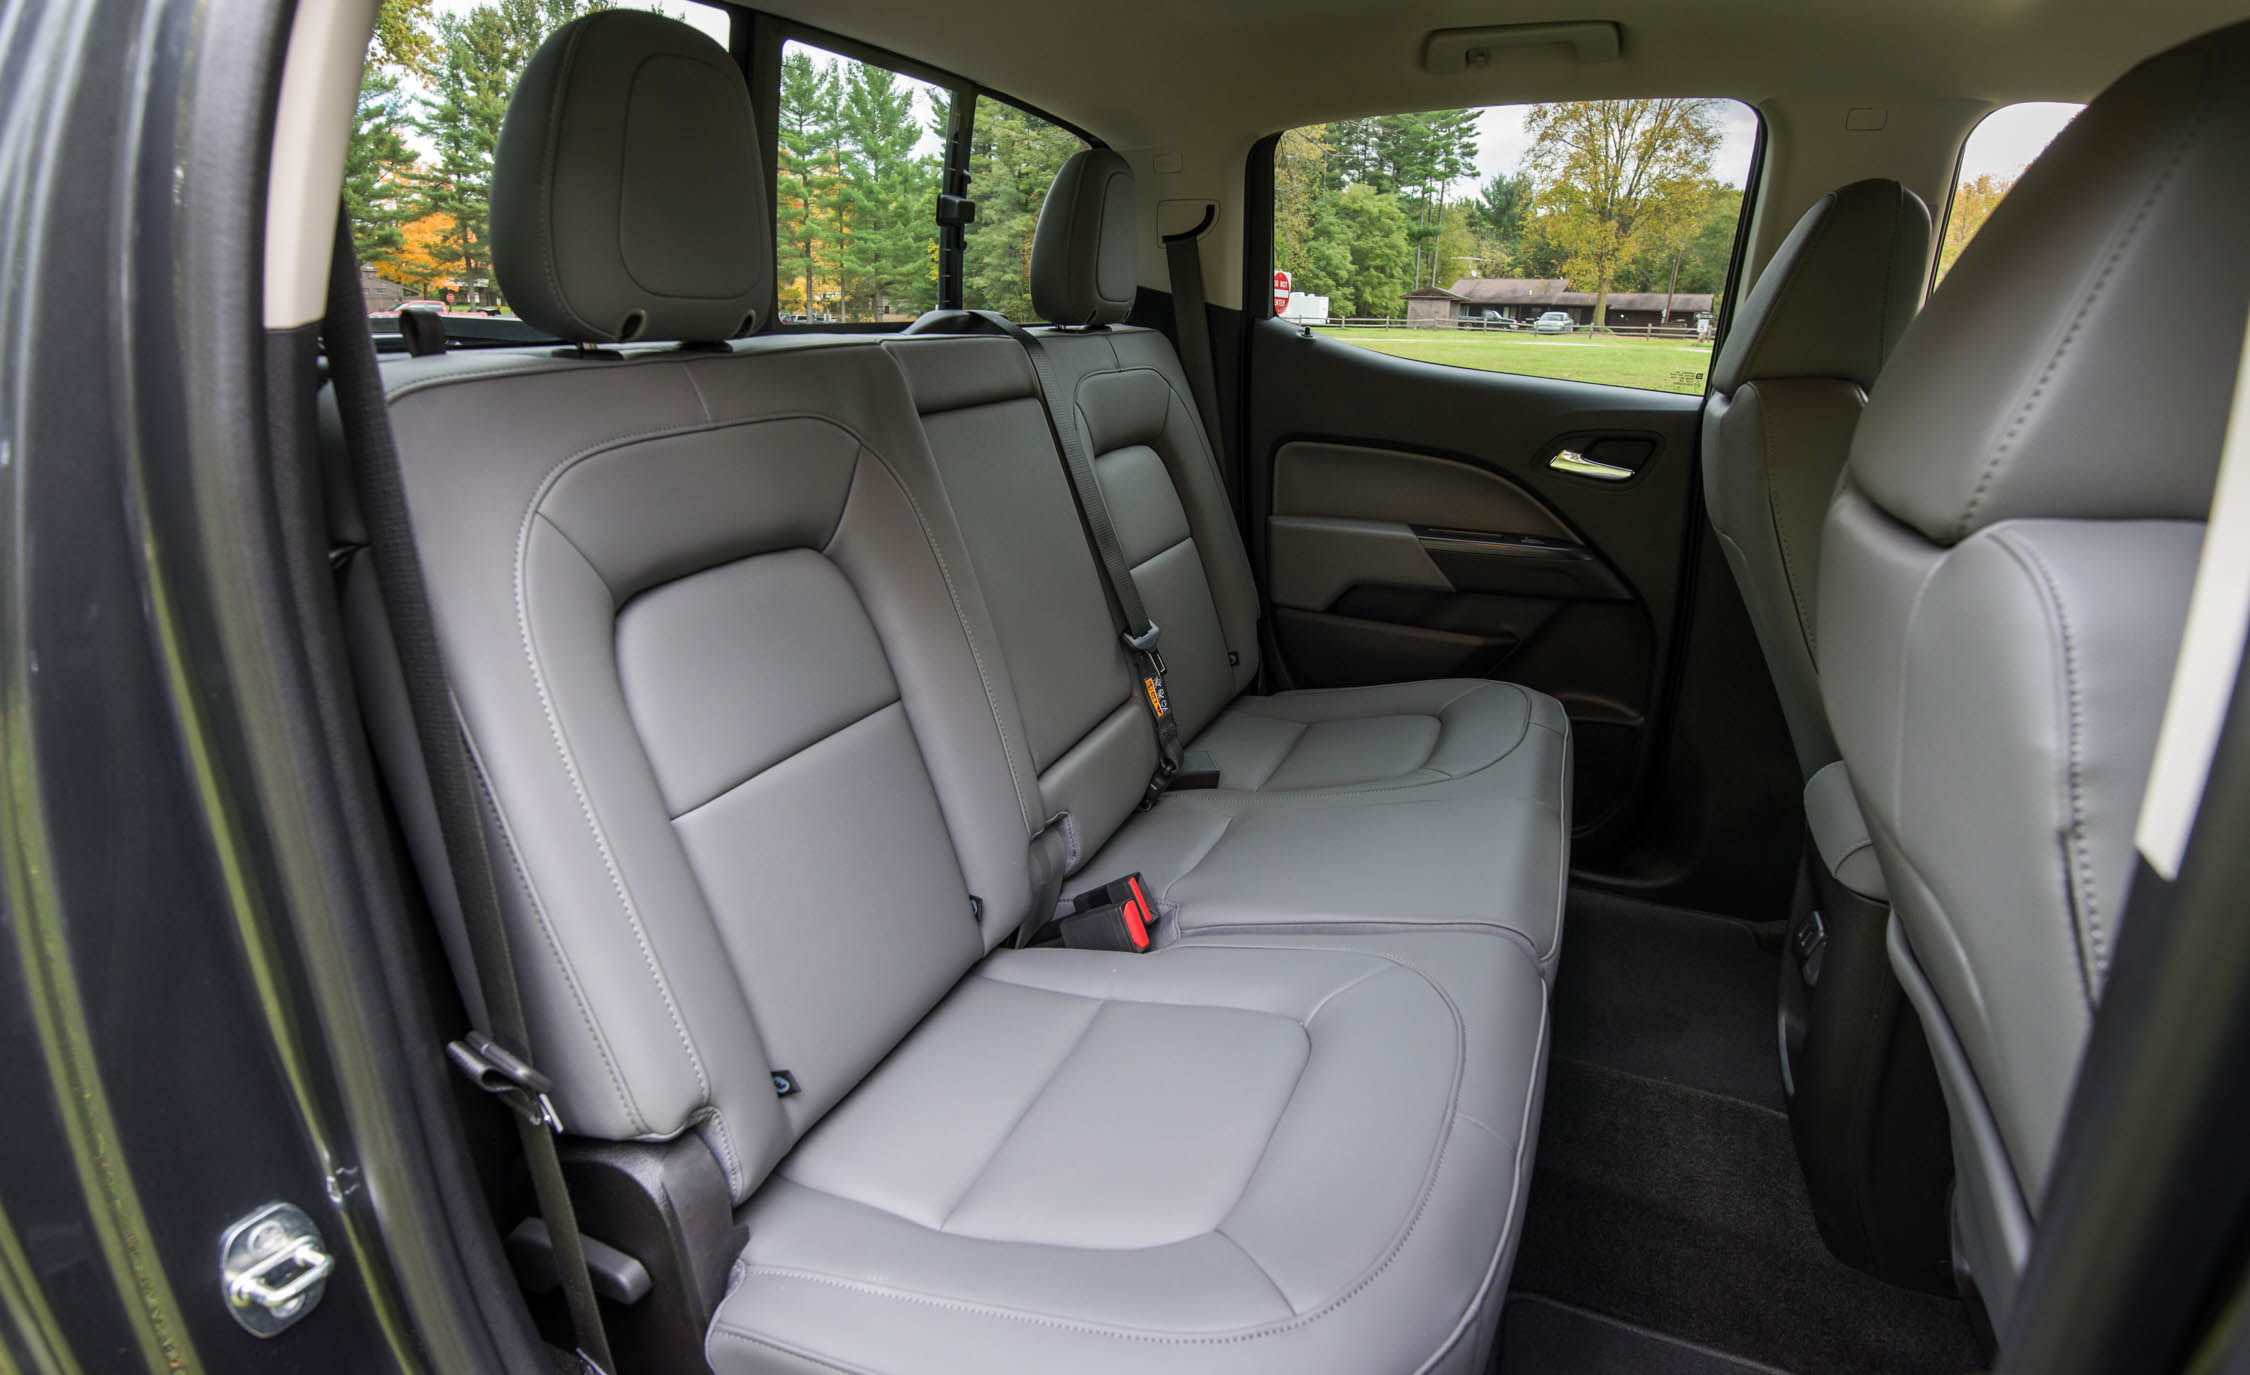 2017 Chevrolet Colorado LT Interior Seats Rear (View 8 of 41)